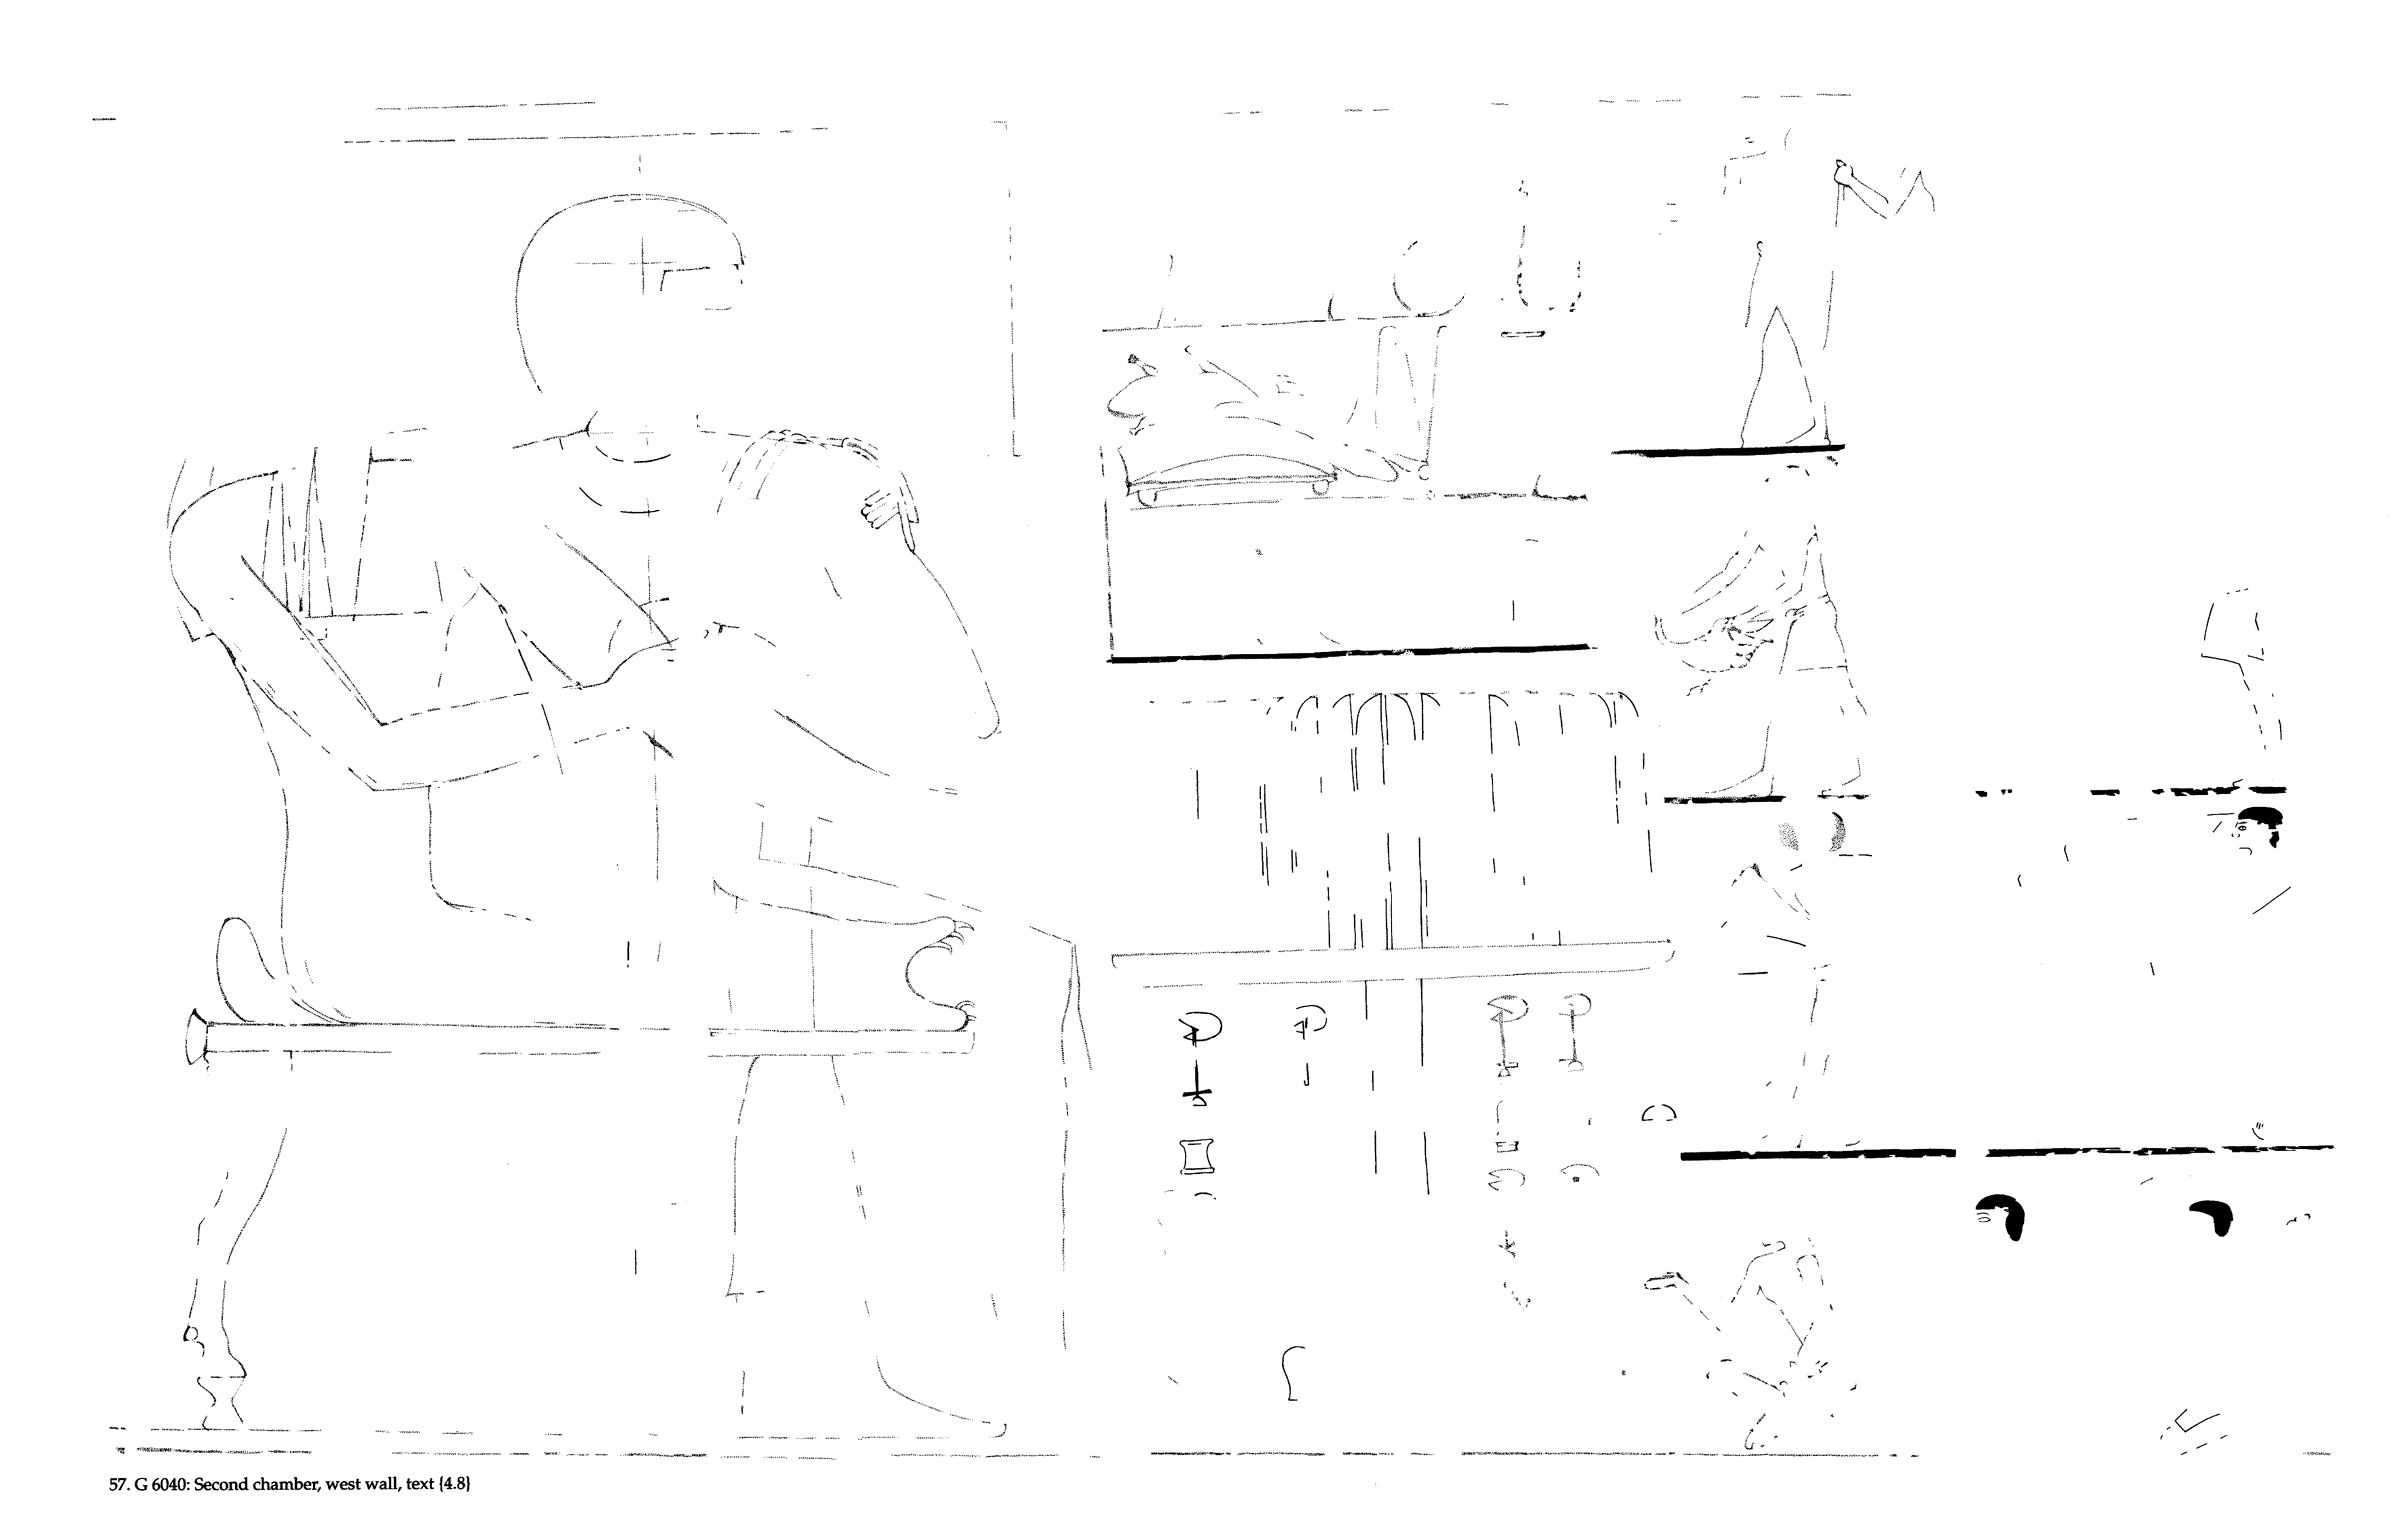 Drawings: G 6040: relief from second chamber, W wall